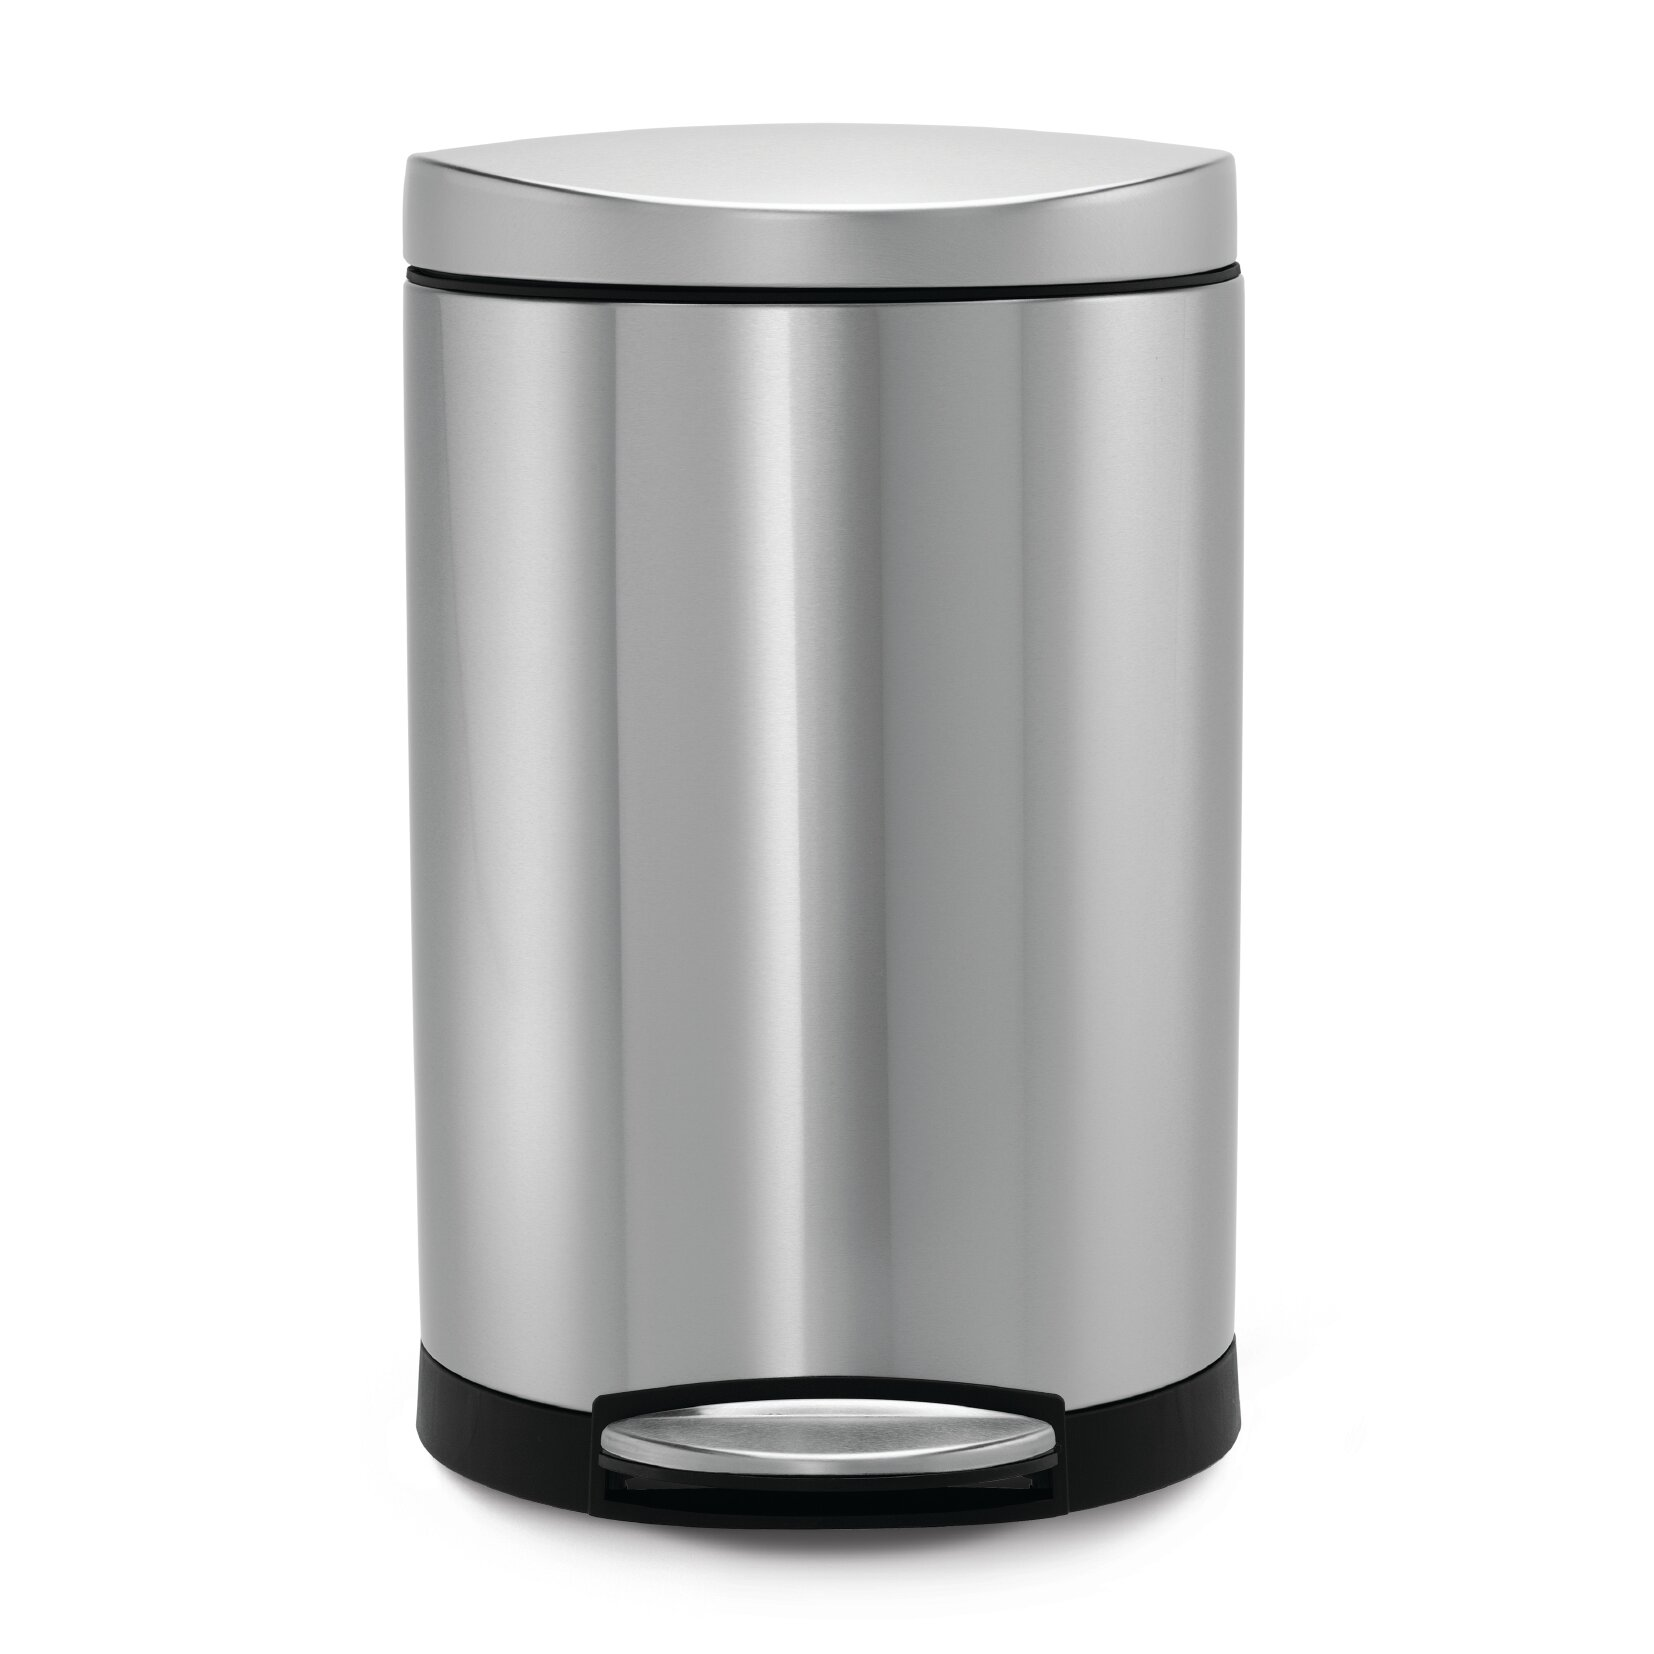 Simplehuman 2 6 gallon step on stainless steel trash can for Simplehuman trash can